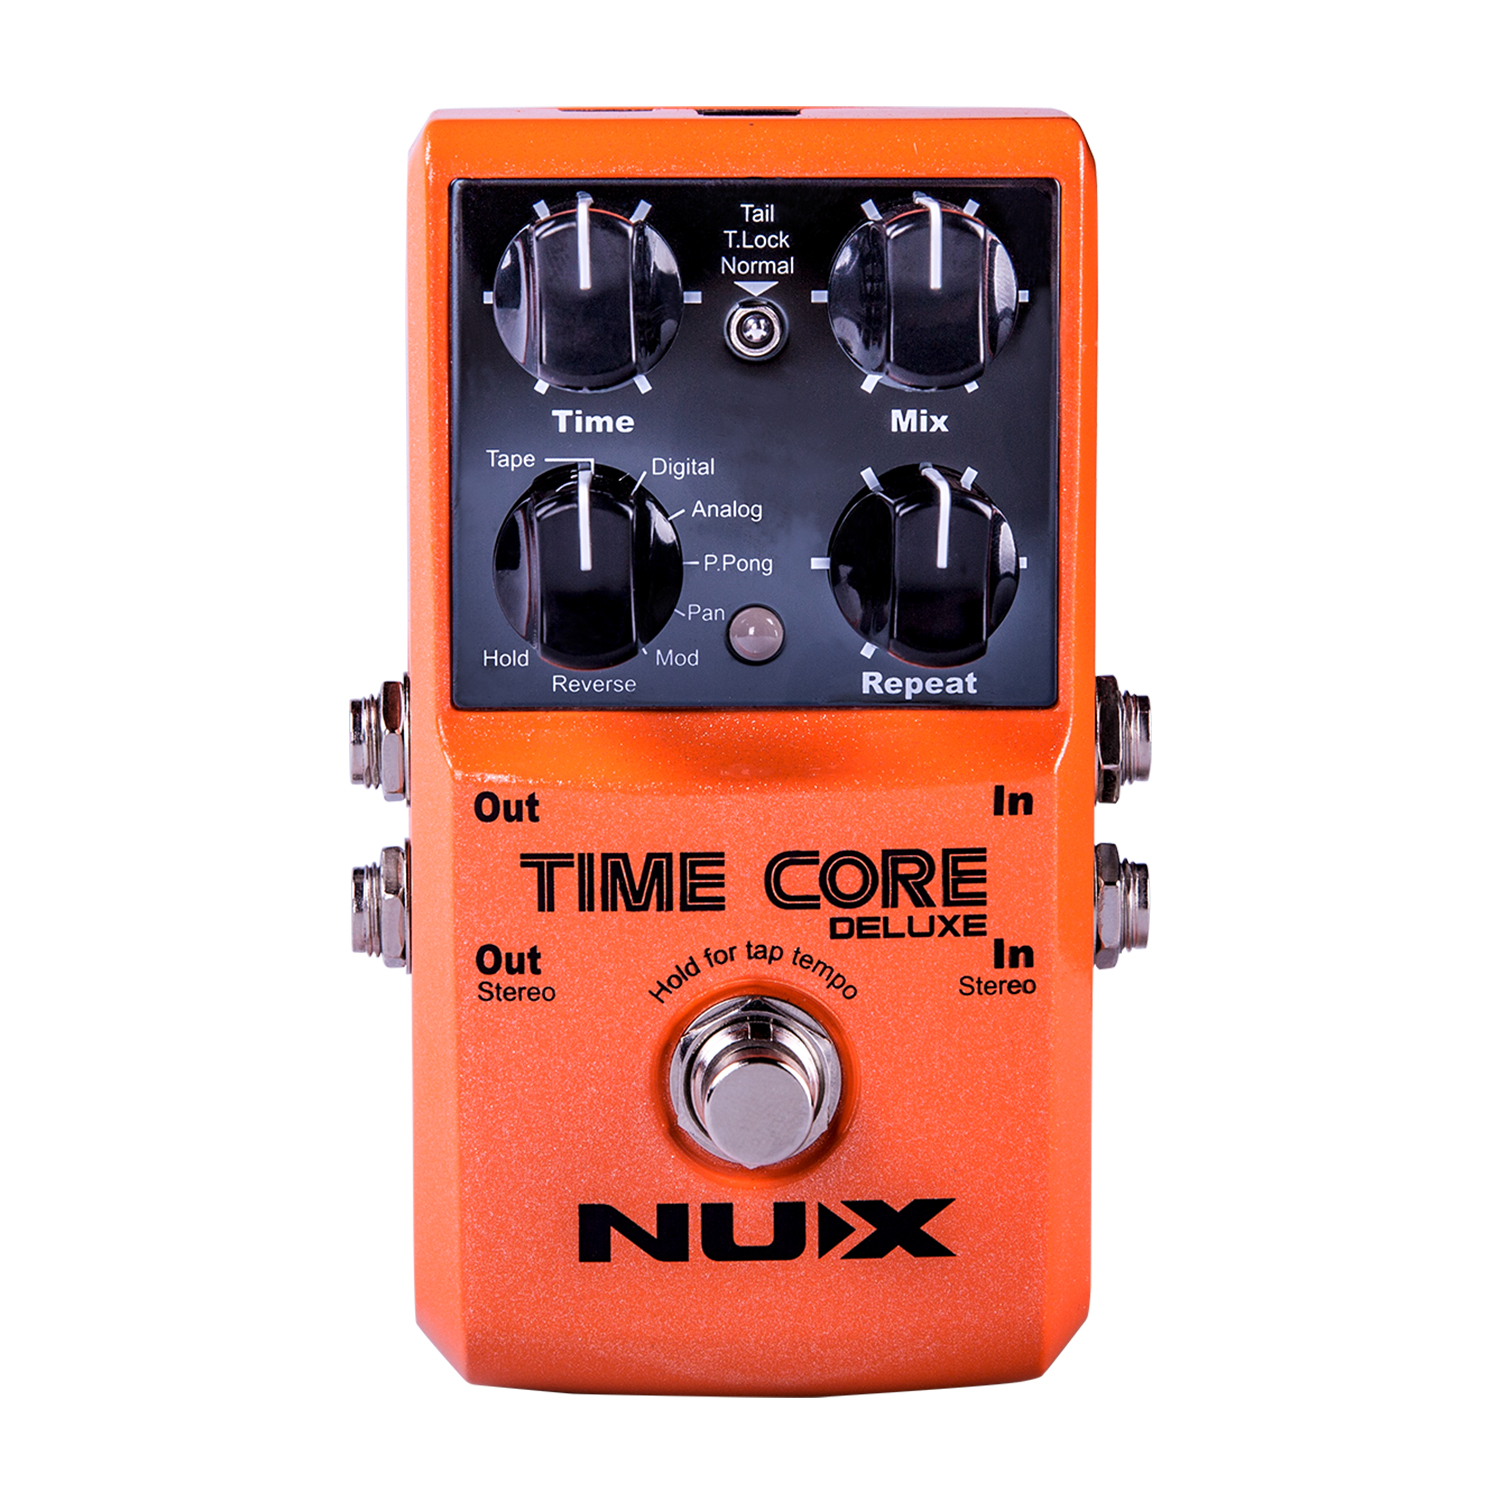 NUX Time Core Deluxe Delay Guitar Effect Pedal Tone Lock TSAC Technology Incredible Ambient True Bypass Crystal Clear nux 1 8 lcd time force delay guitar effect pedal white black